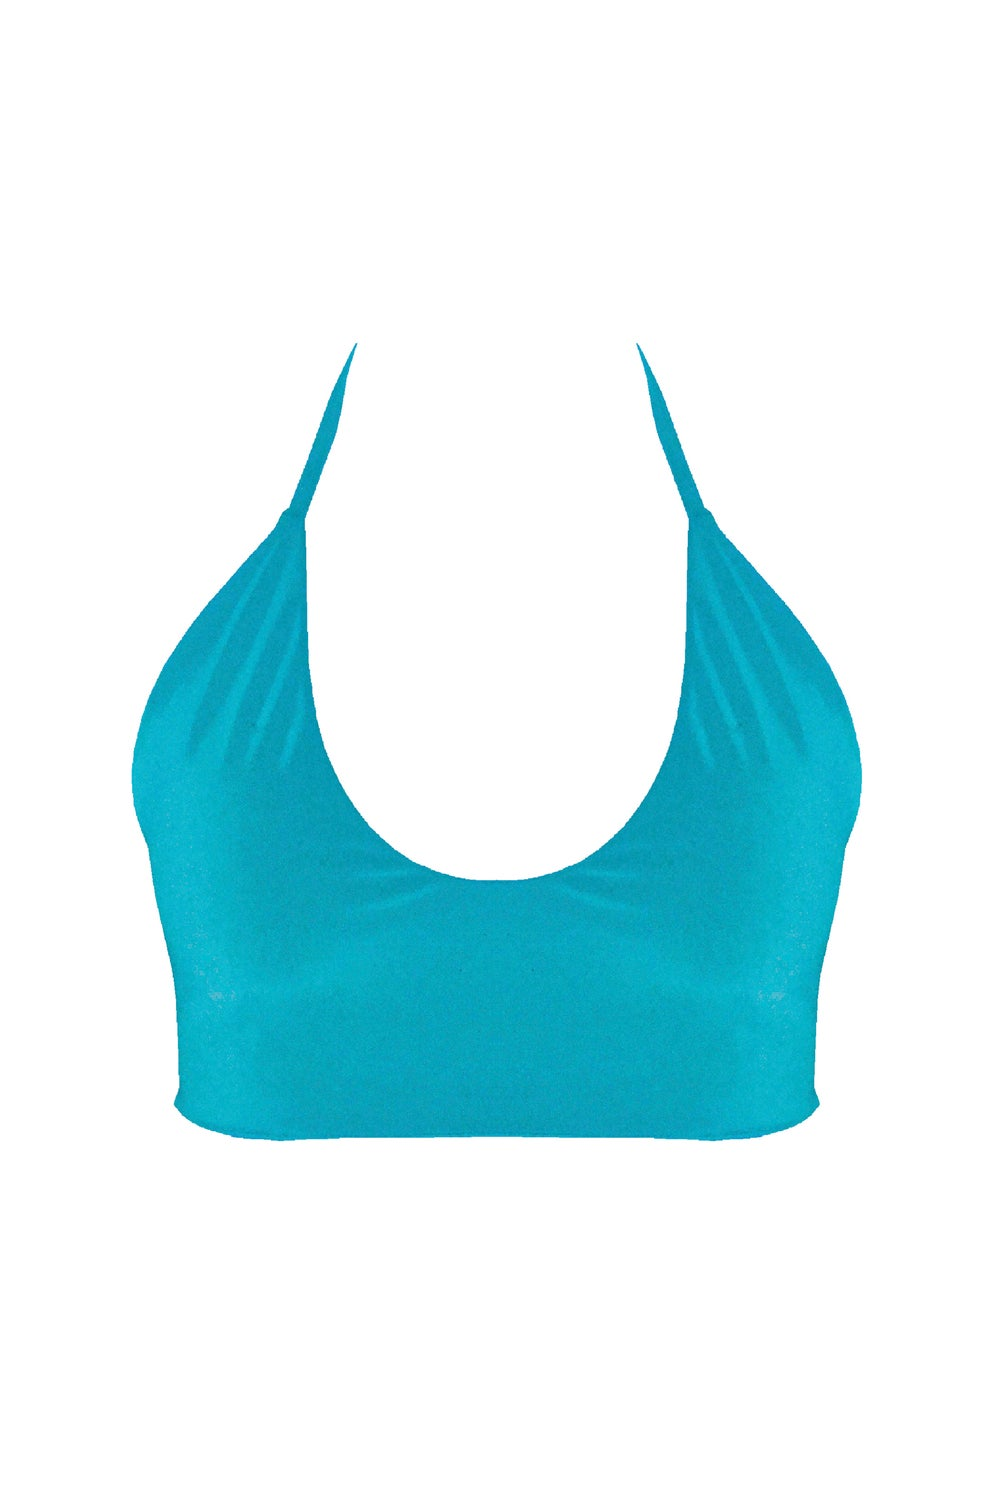 Image of Crisscross Top - Turquoise